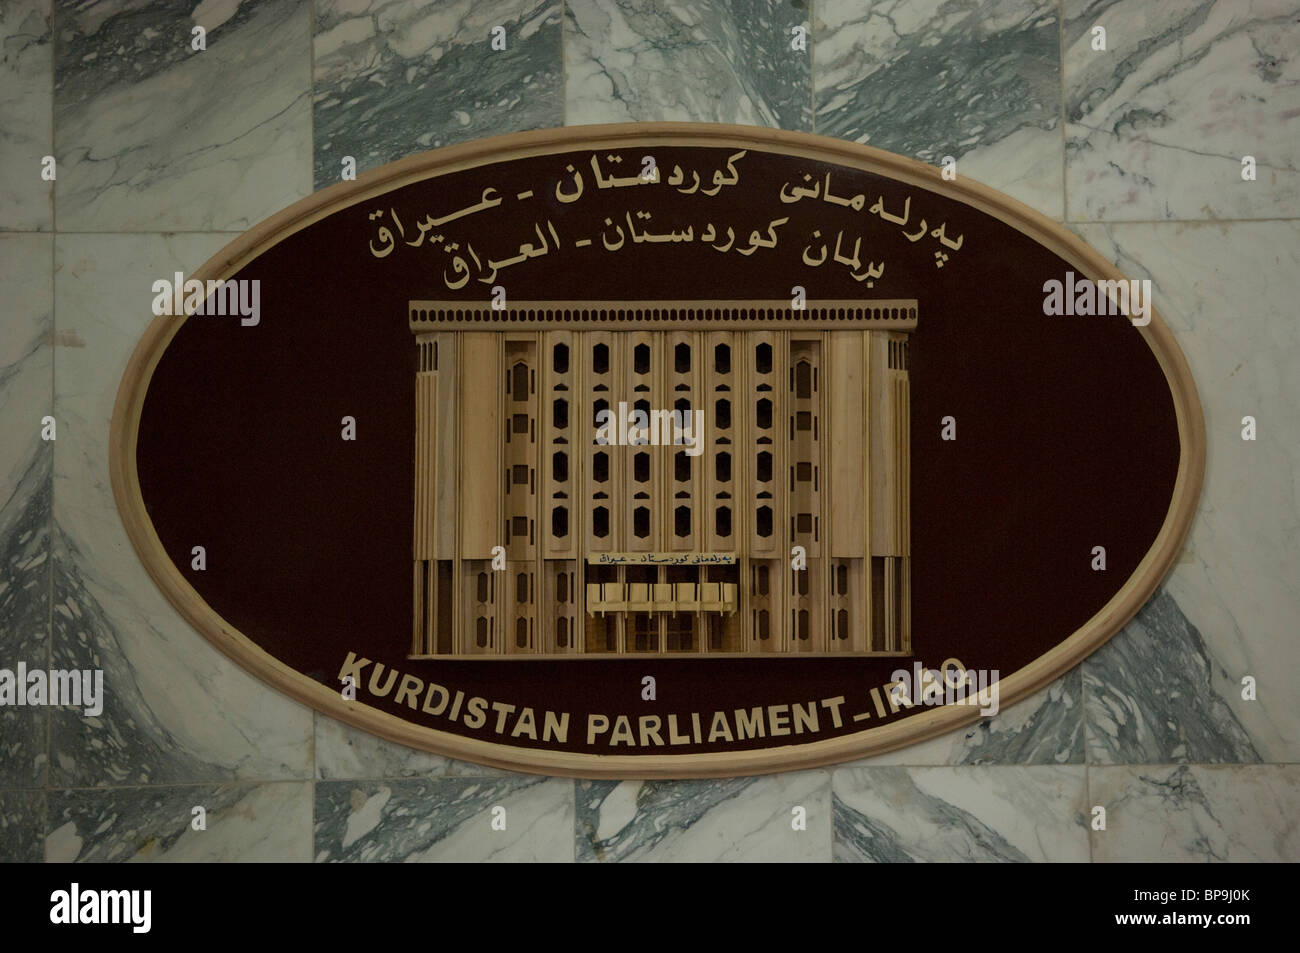 Kurdish Parliament Erbil - Stock Image